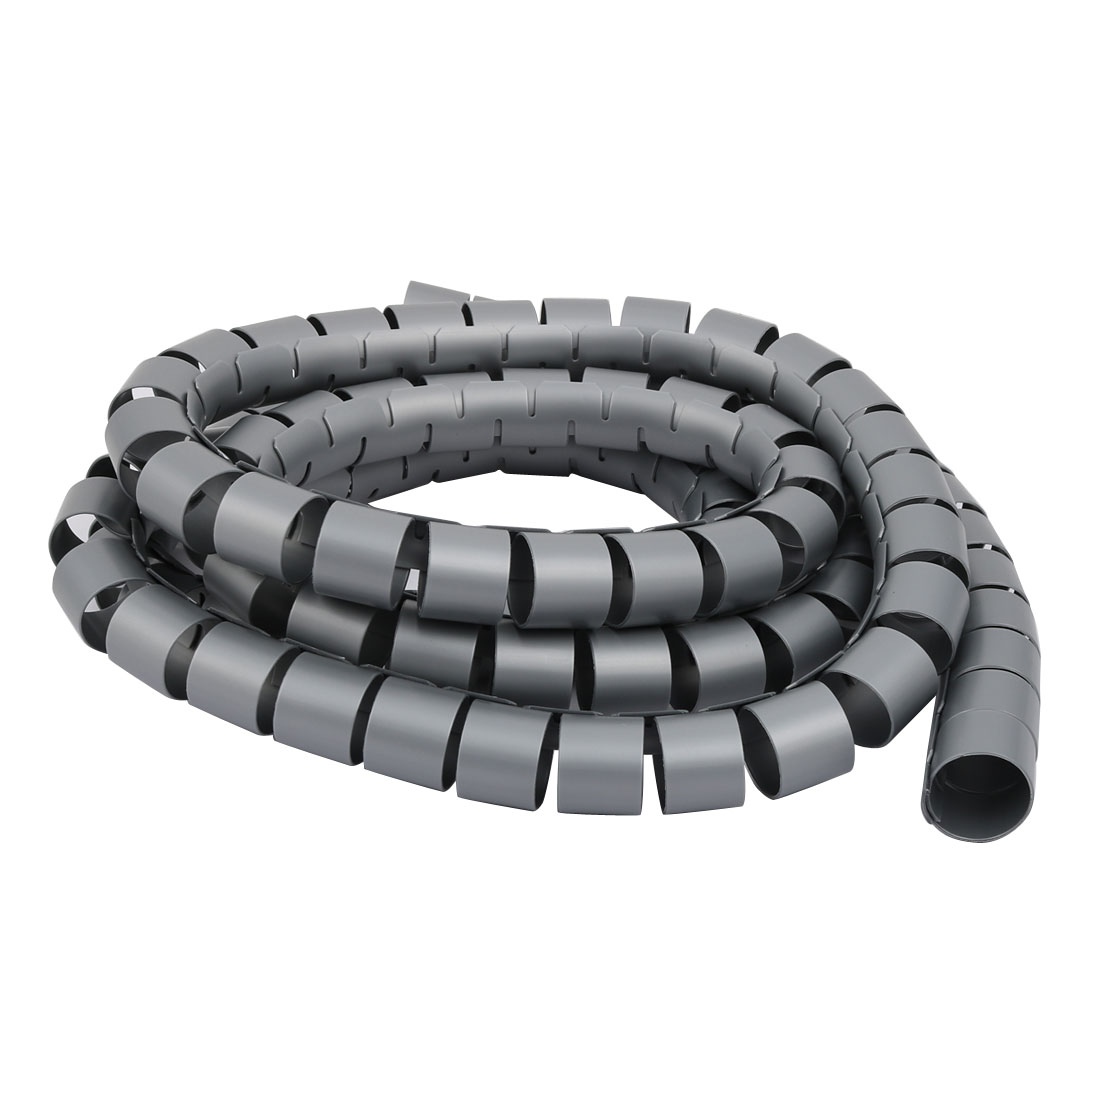 Unique Bargains Flexible Spiral Tube Cable Wire Wrap Gray 30mm Dia x 2.5 Meter Long with Clip